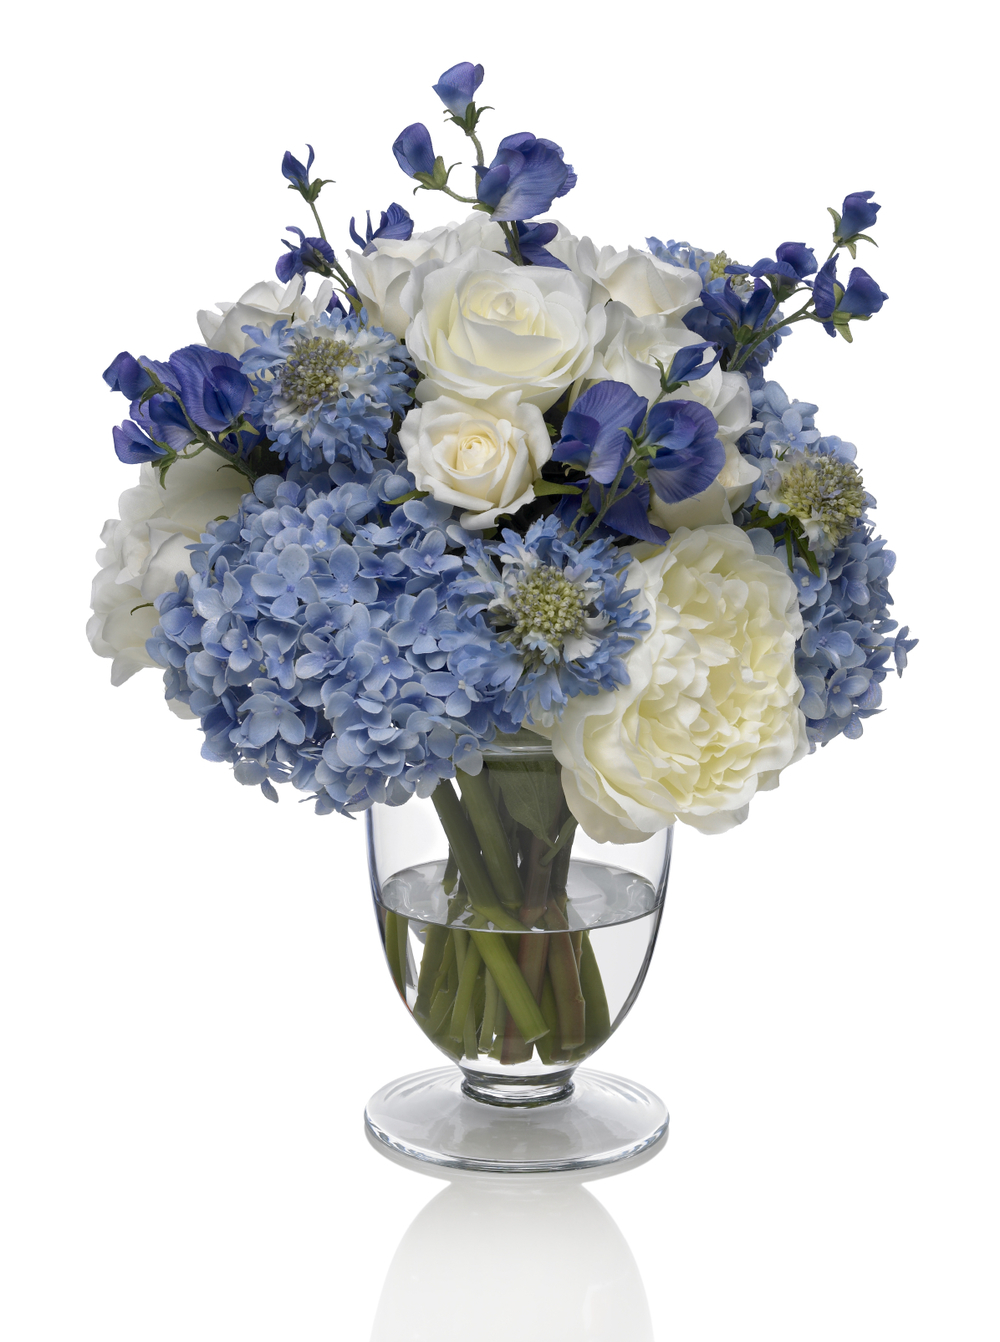 blue and white arrangement istock 2.jpg